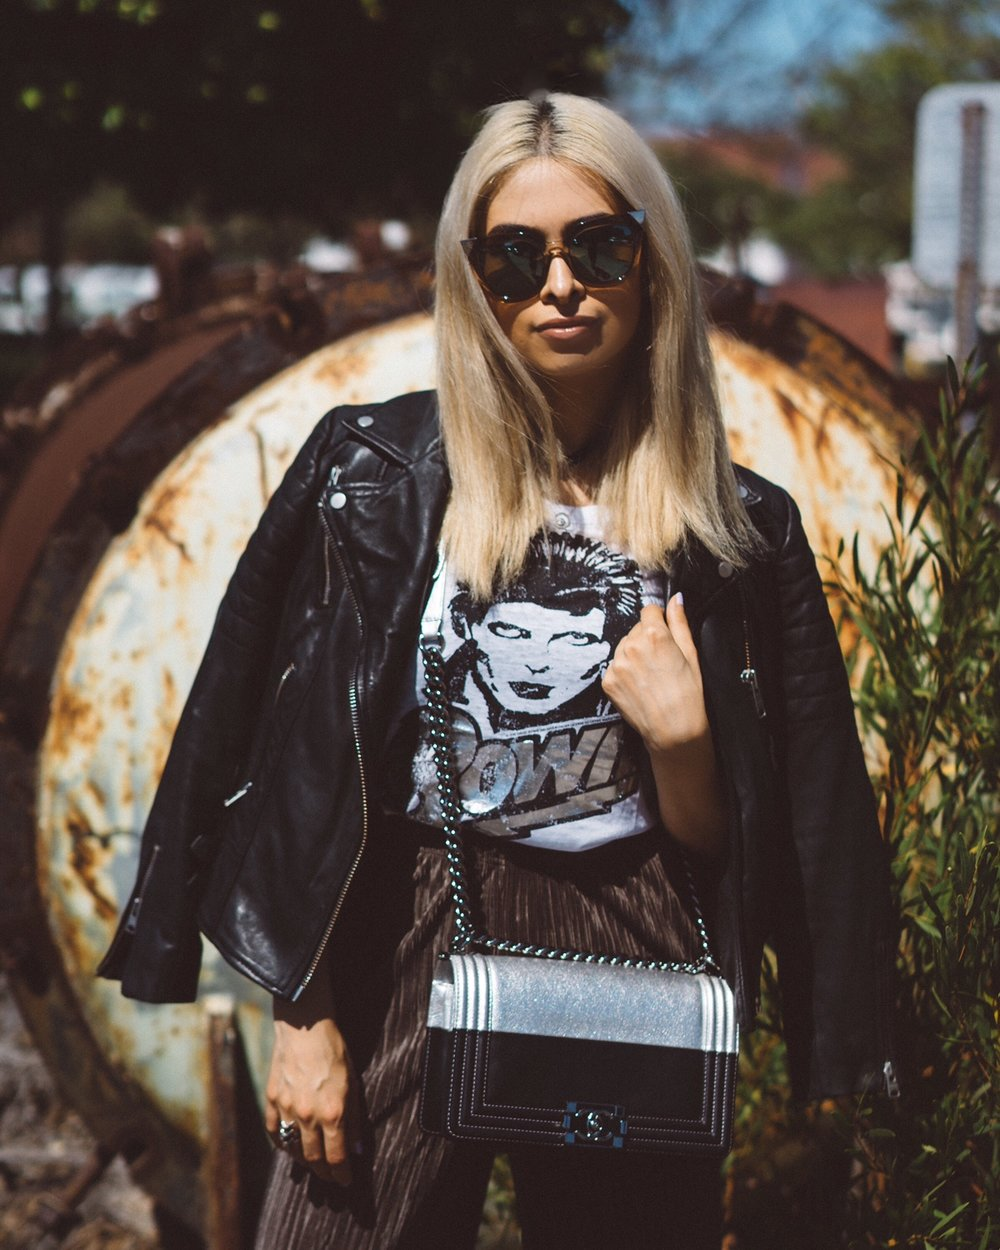 edgy style_allsaints leather jacket_allsaints papin jacket_savvy javvy_la fashion blogger_oc fashion blogger_best la fashion bloggers_icy blonde hair_kim kardashian blonde hair_kylie jenner blonde hair_chaser the brand tee_topshop culotte pants_chanel bag_pointed toe leather booties